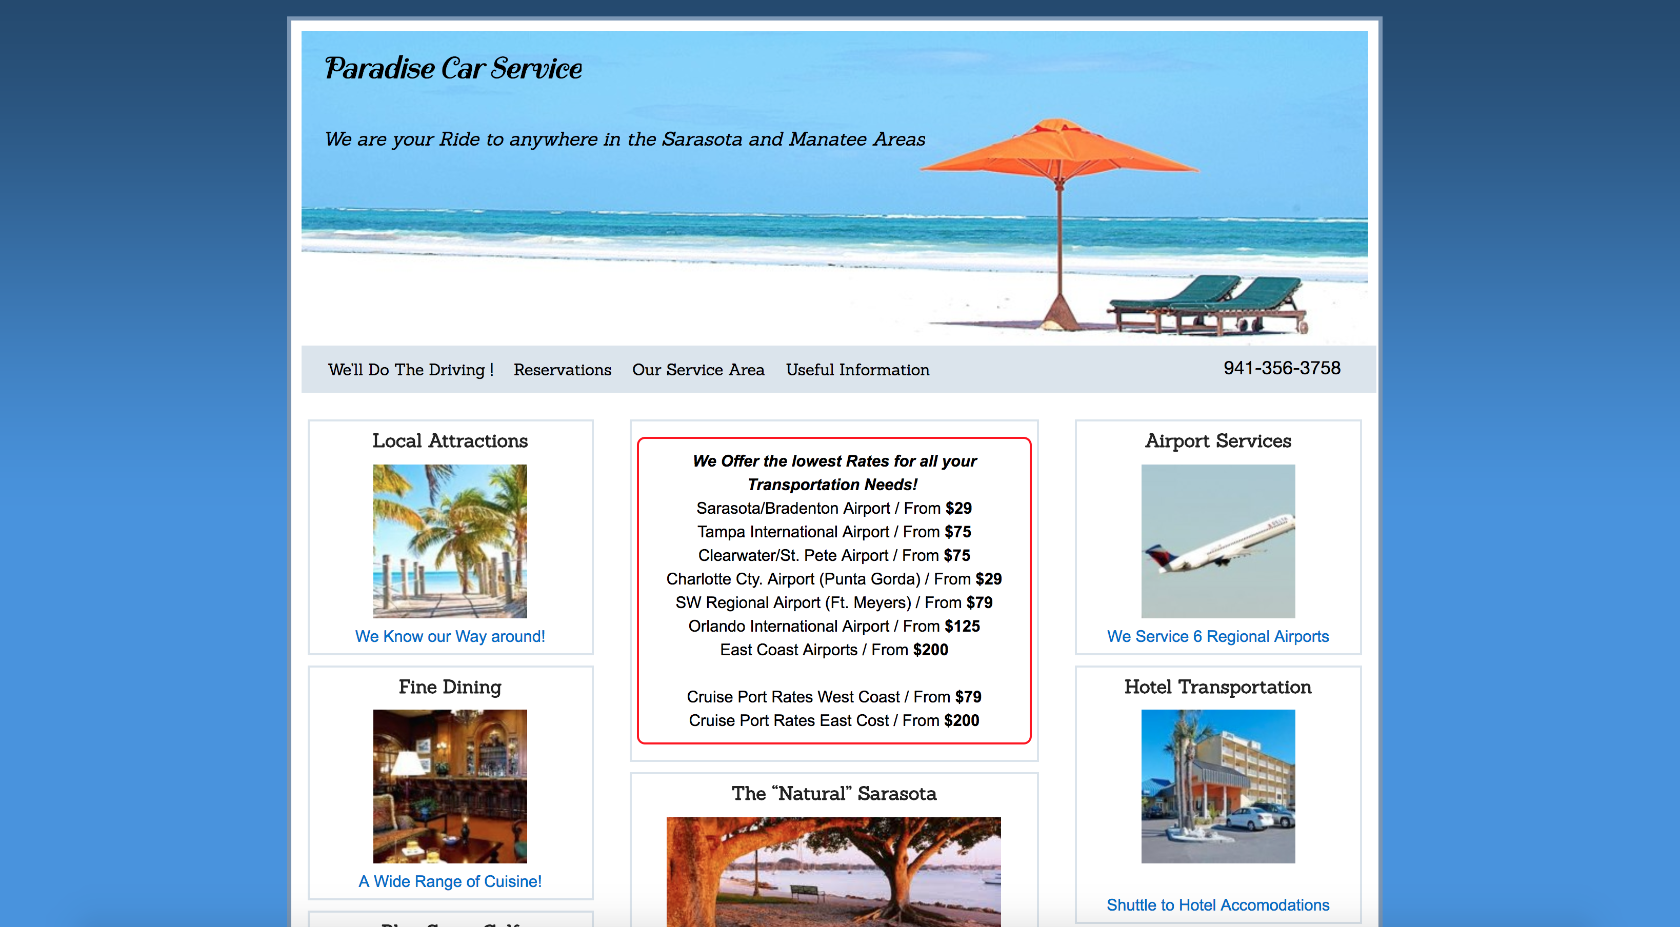 Paradise Car Service keeps the content straightforward on their website.